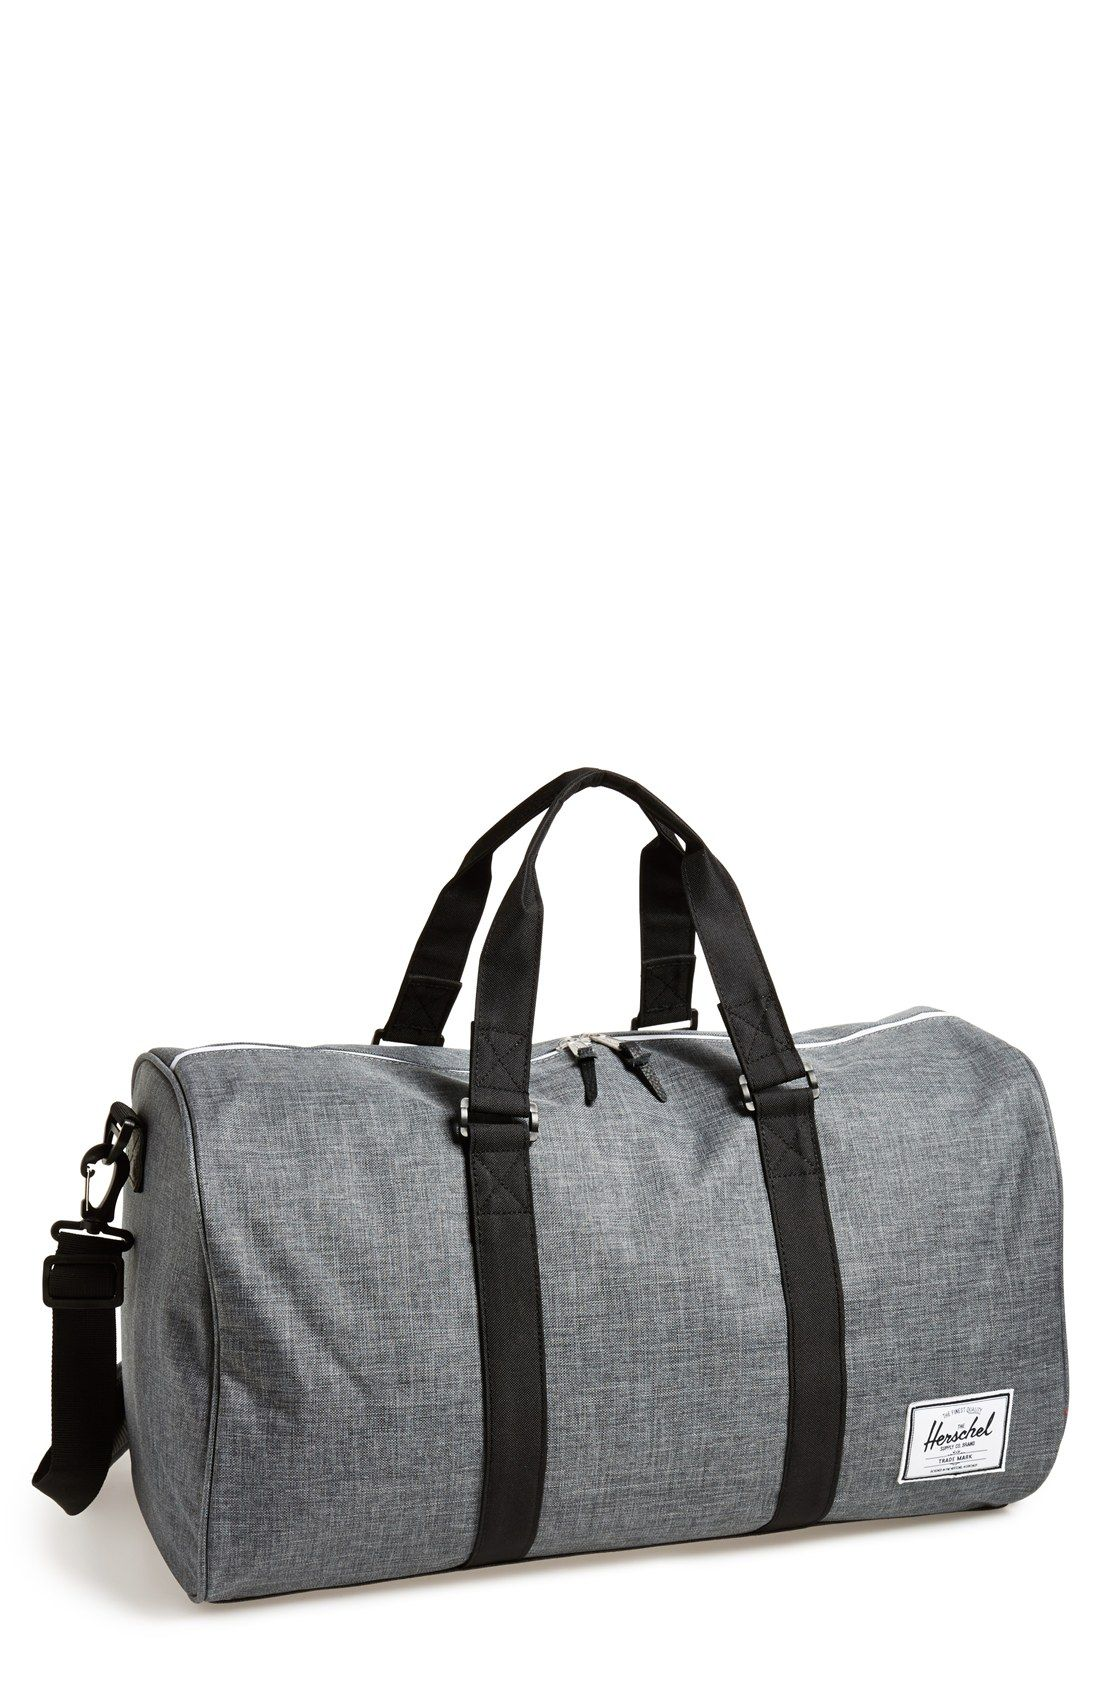 d412b160a3fd Herschel Supply Co.  Novel  Duffel Bag CAD 111.74Item  829862 in Charcoal  Crosshatch More